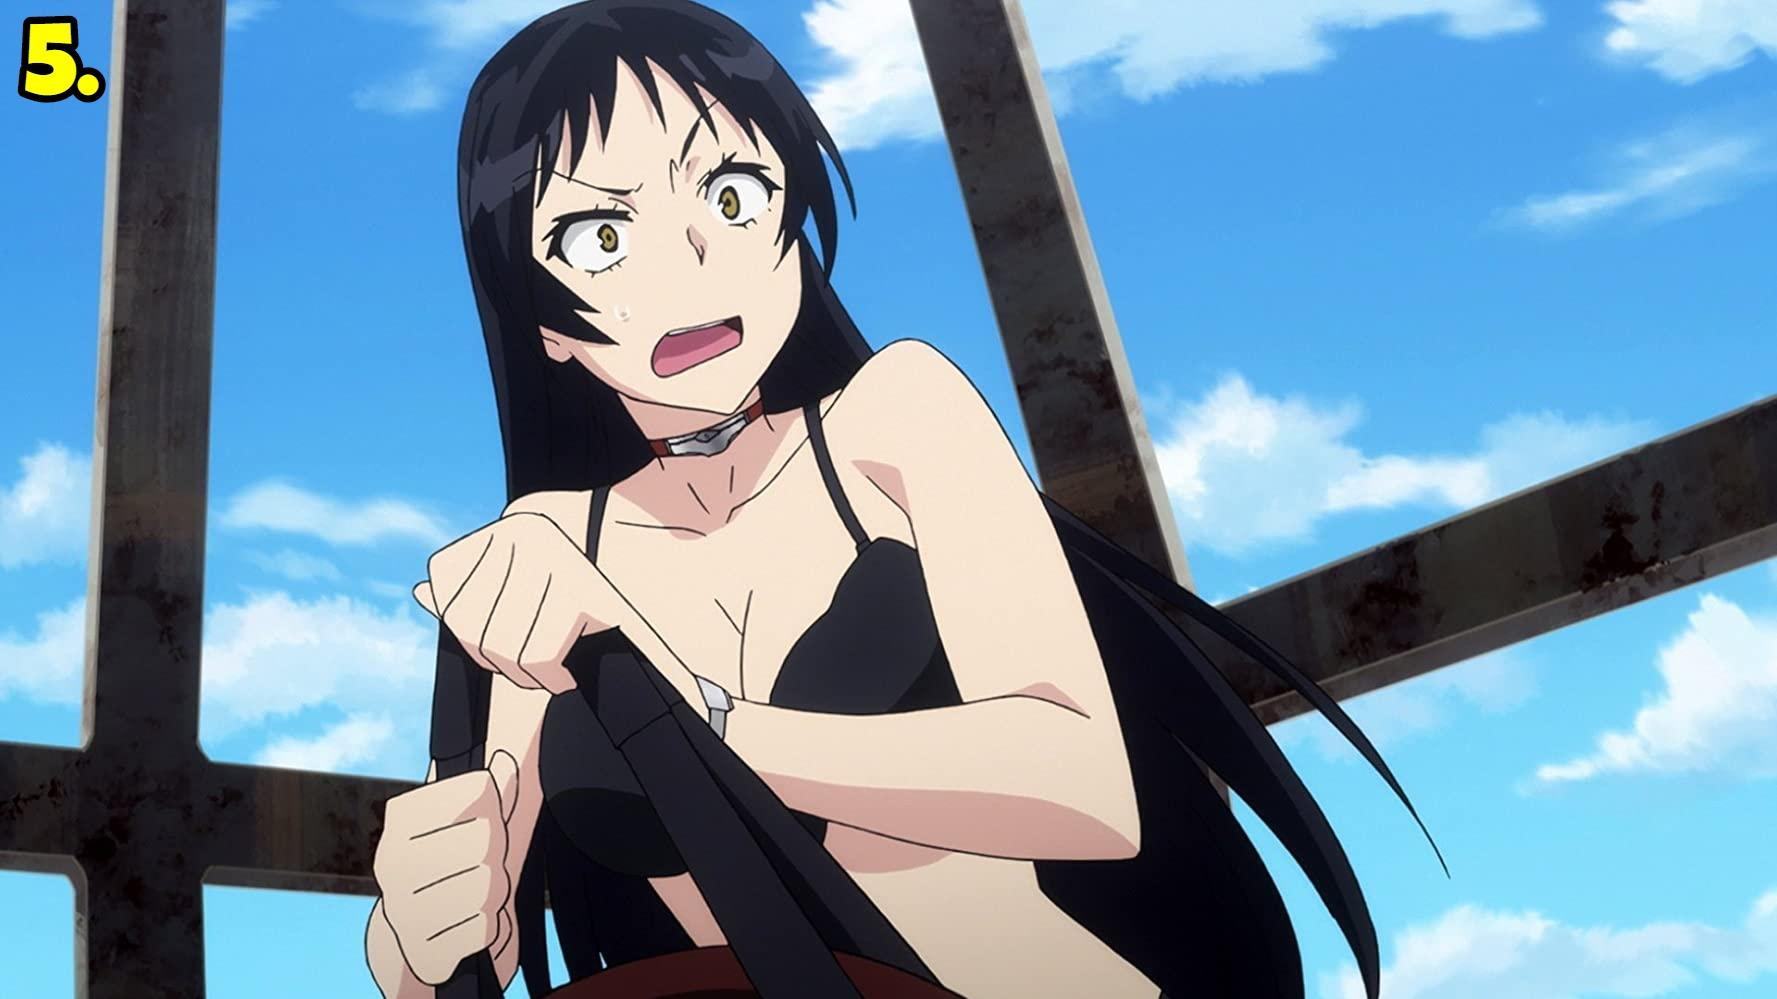 Shimoneta A Boring World Where The Concept Of Dirty Jokes Doesn't Exist